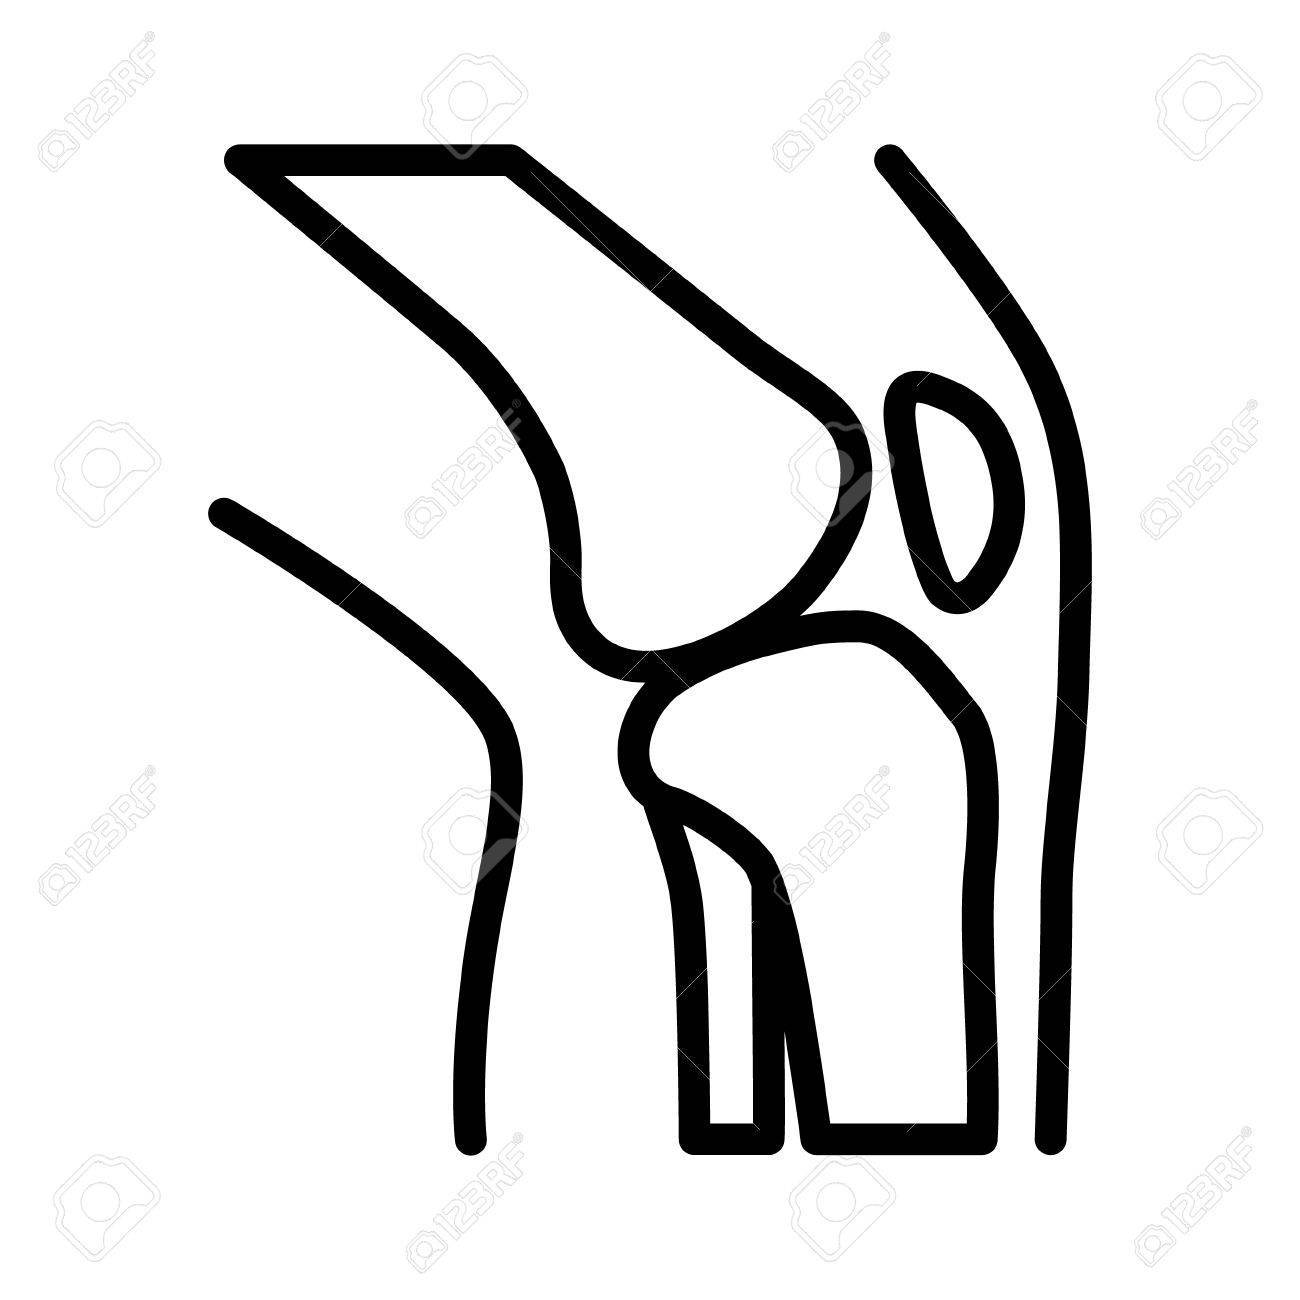 Knee joint clipart 9 » Clipart Portal.